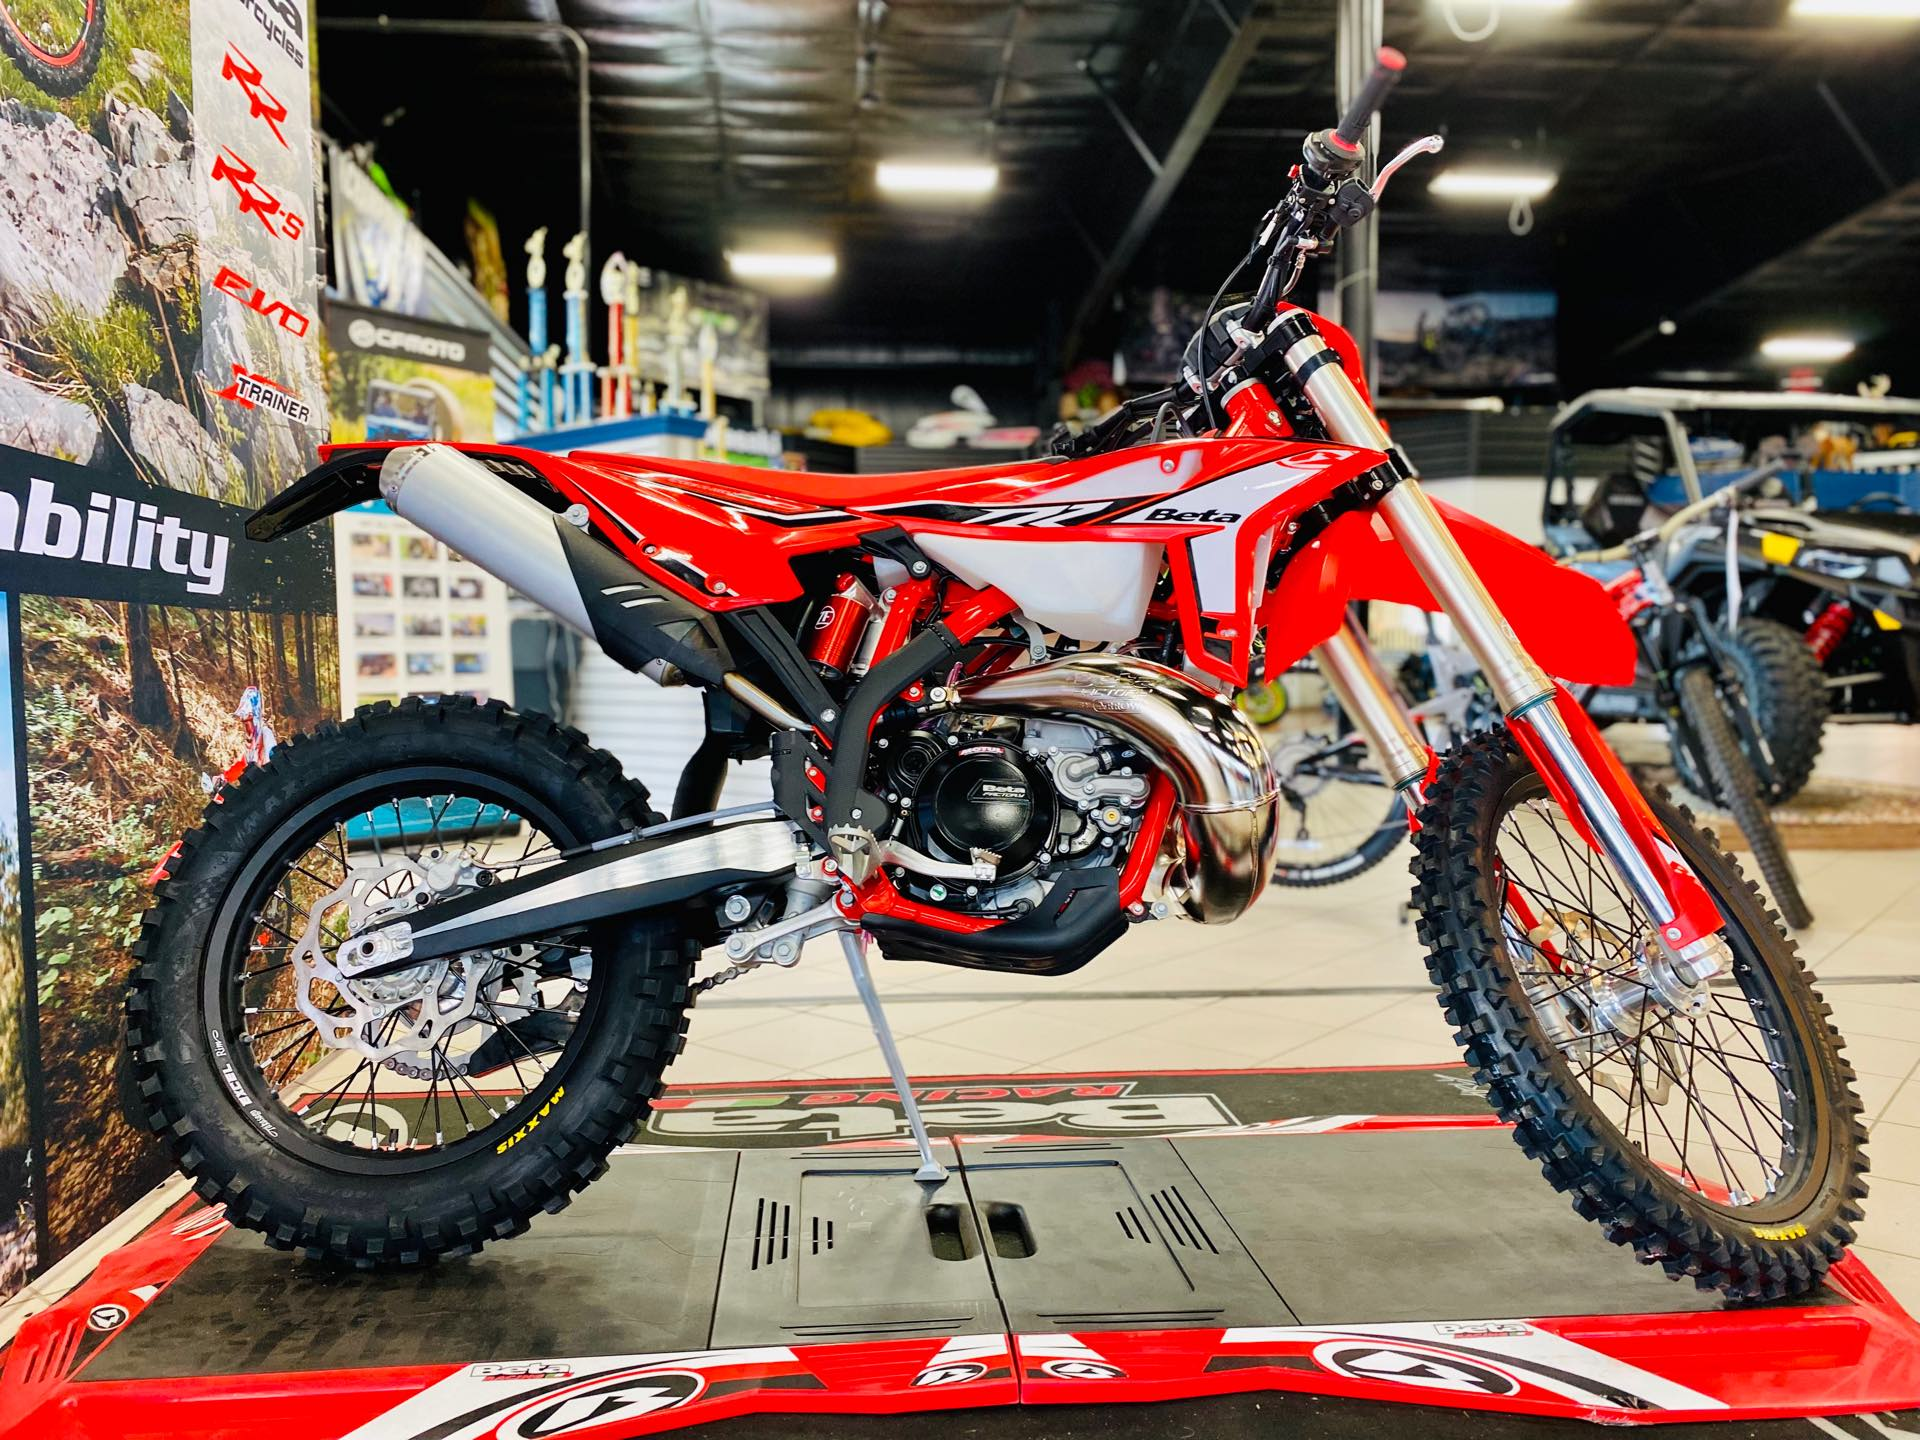 2022 BETA RR 300 2-Stroke at Rod's Ride On Powersports